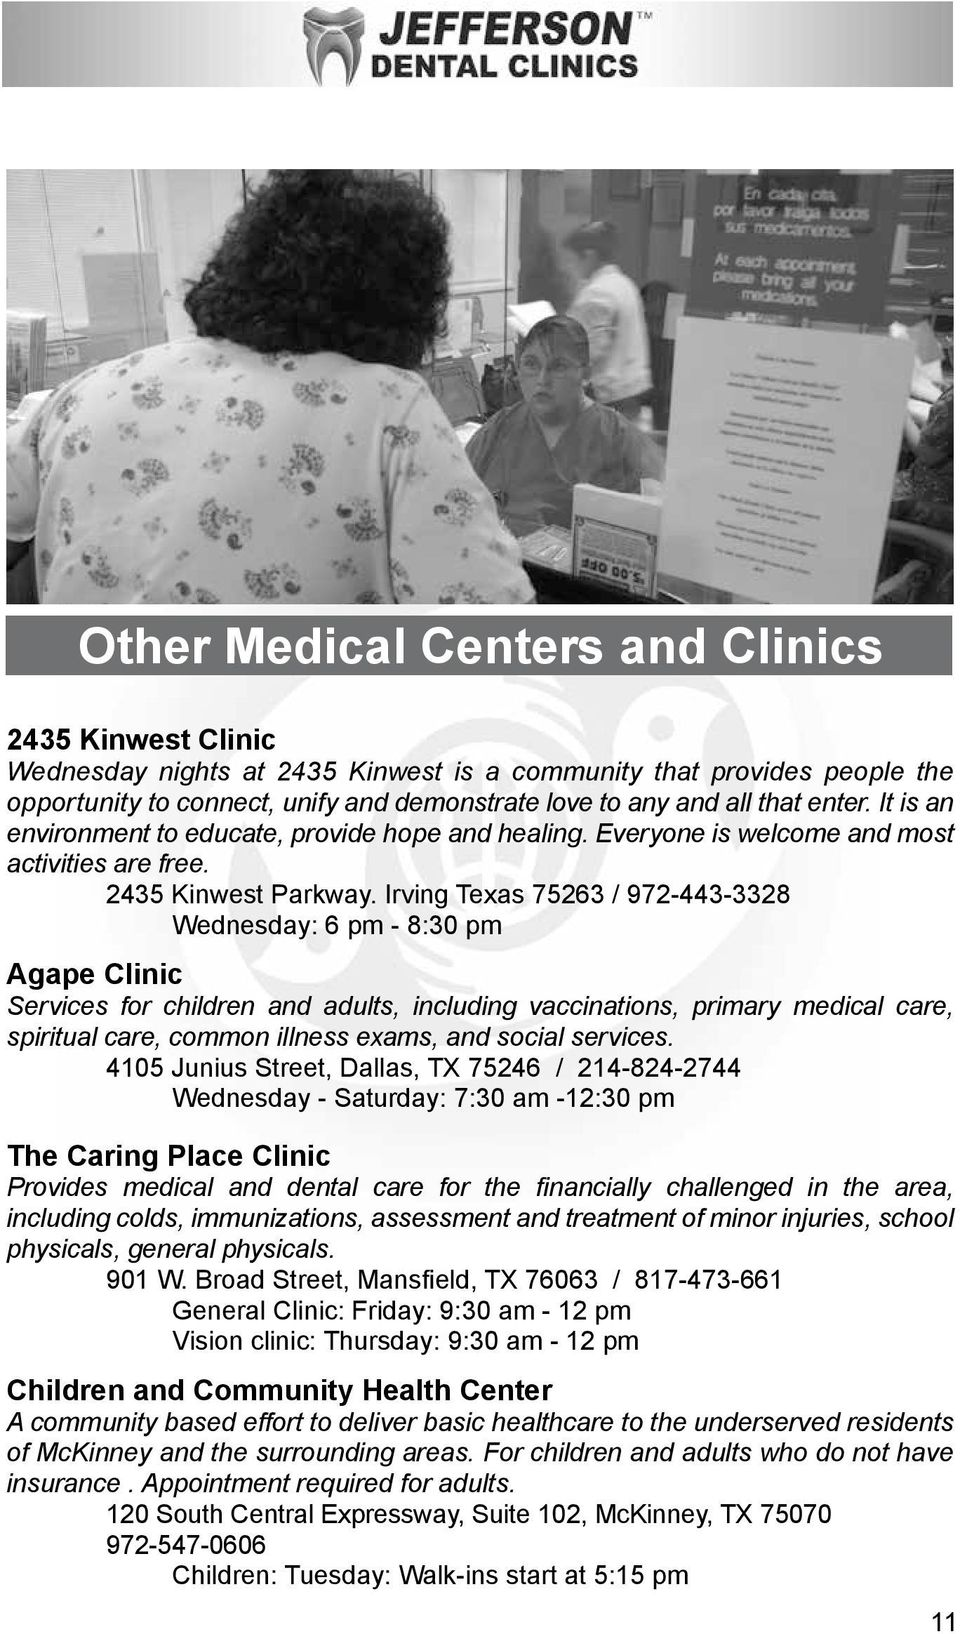 Irving Texas 75263 / 972-443-3328 Wednesday: 6 pm - 8:30 pm Agape Clinic Services for children and adults, including vaccinations, primary medical care, spiritual care, common illness exams, and